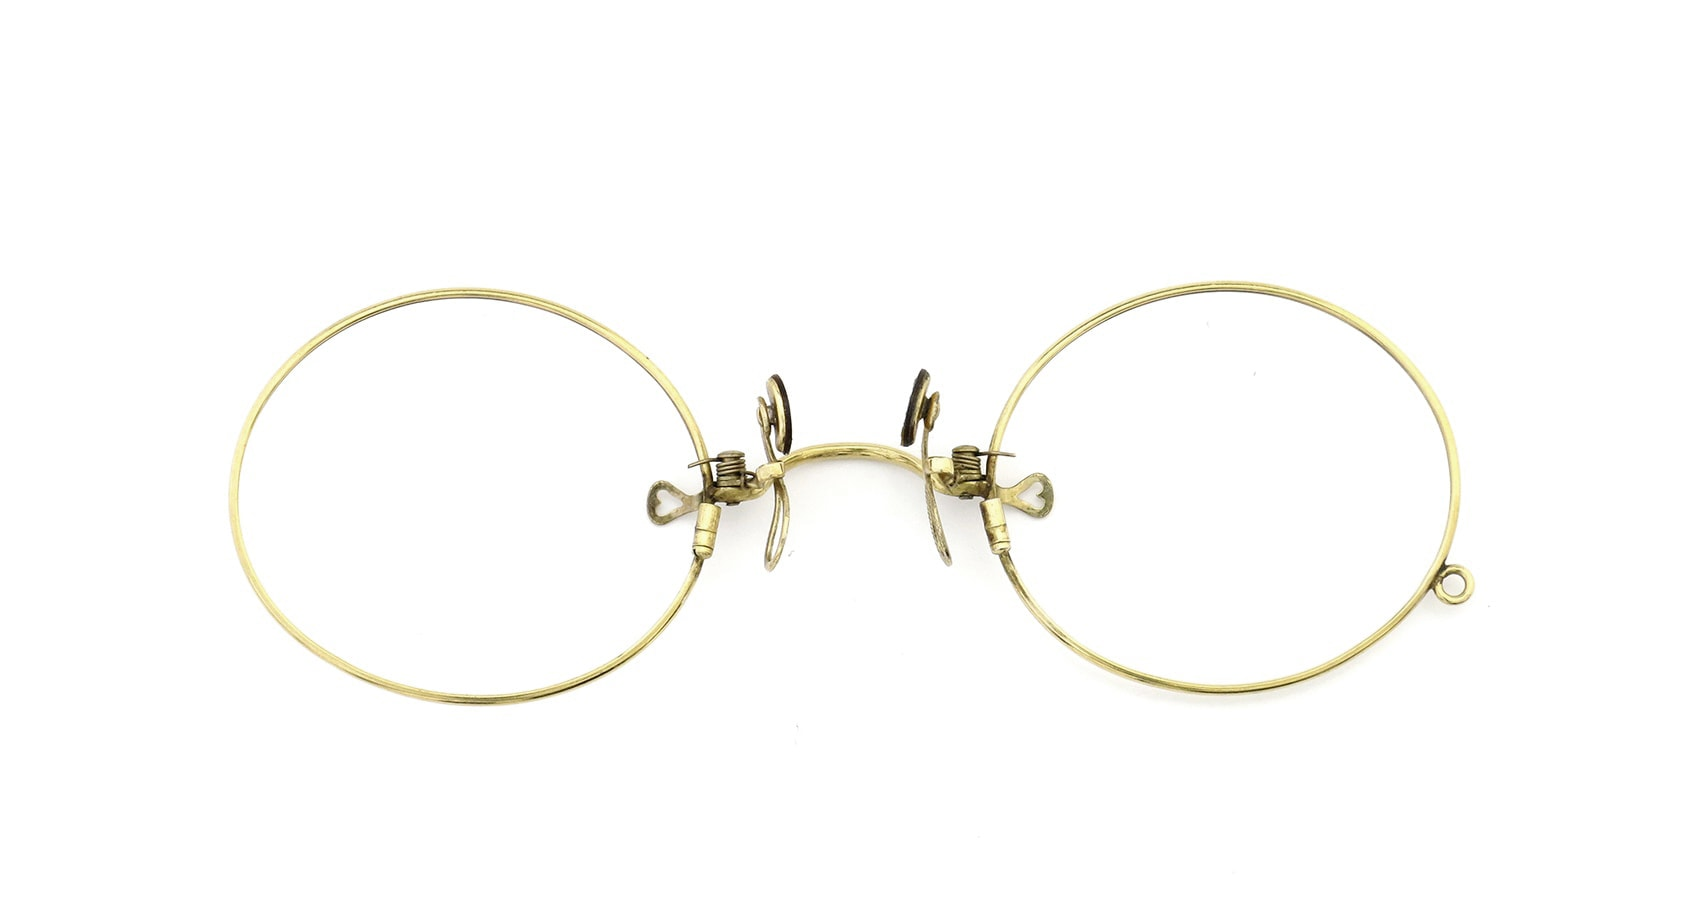 Lesca Speciality collection Pince Nez [v3] Oval 2